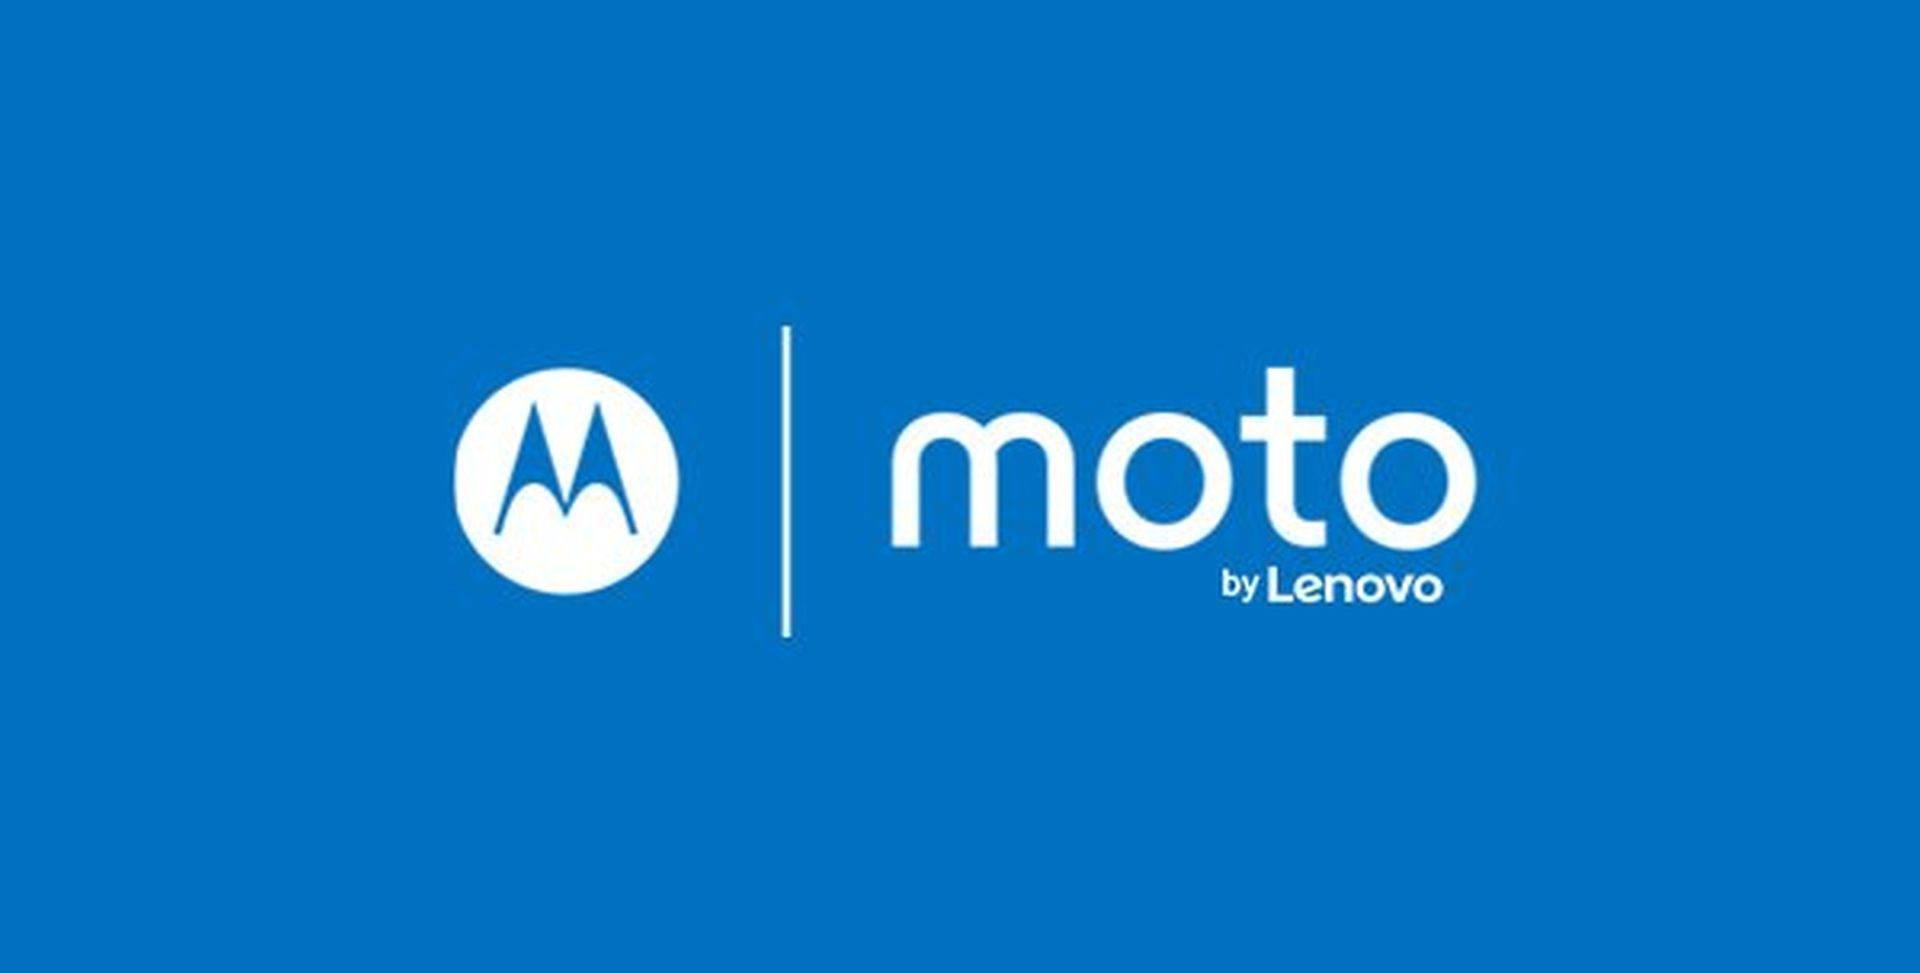 Modojo | Lenovo Moto is Pulling Out of the Smartwatch Market